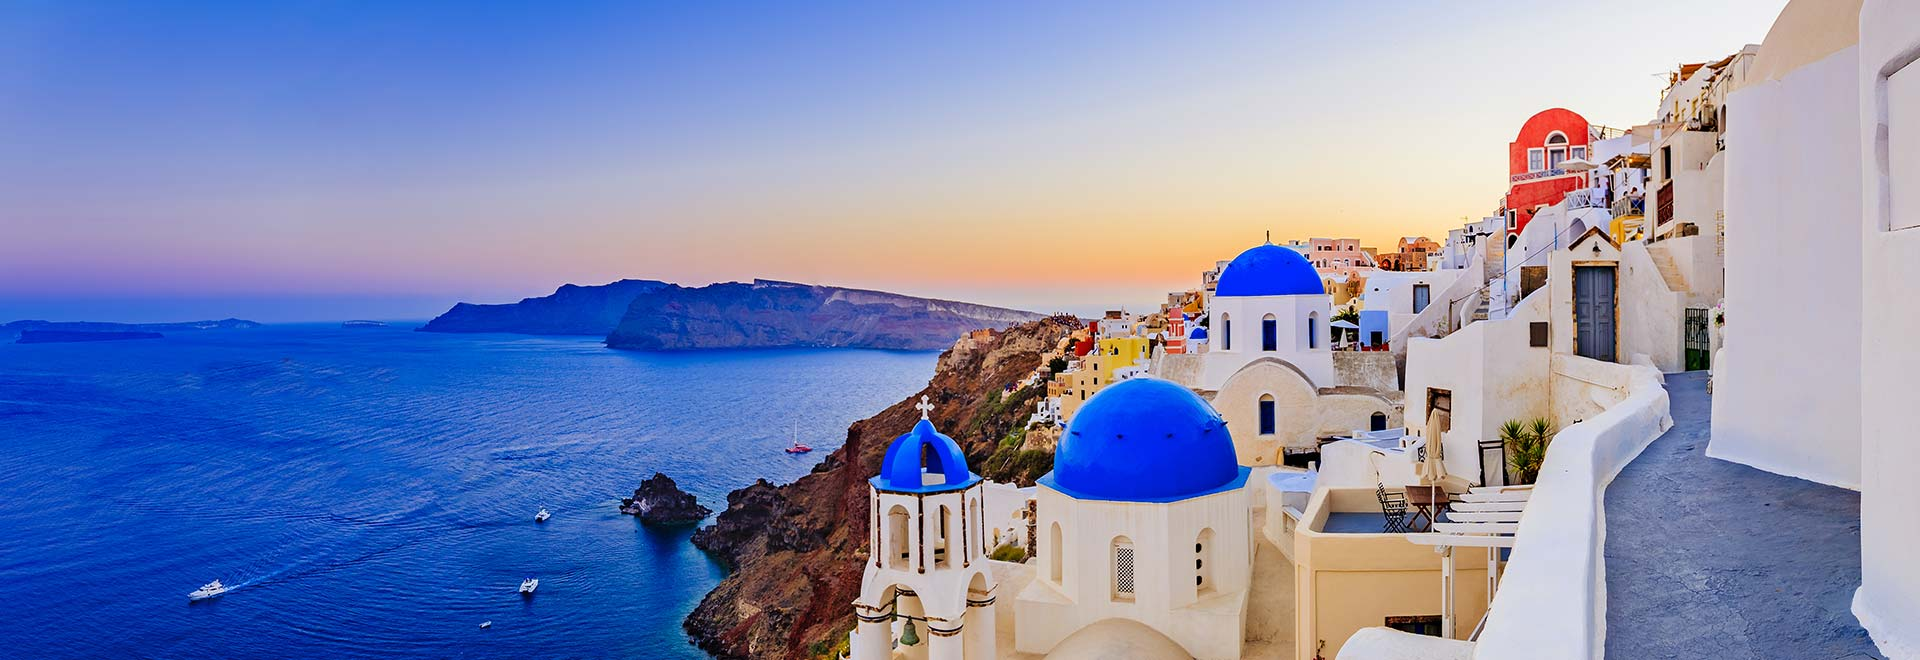 Europe Greece Greek Isle Cruise MH